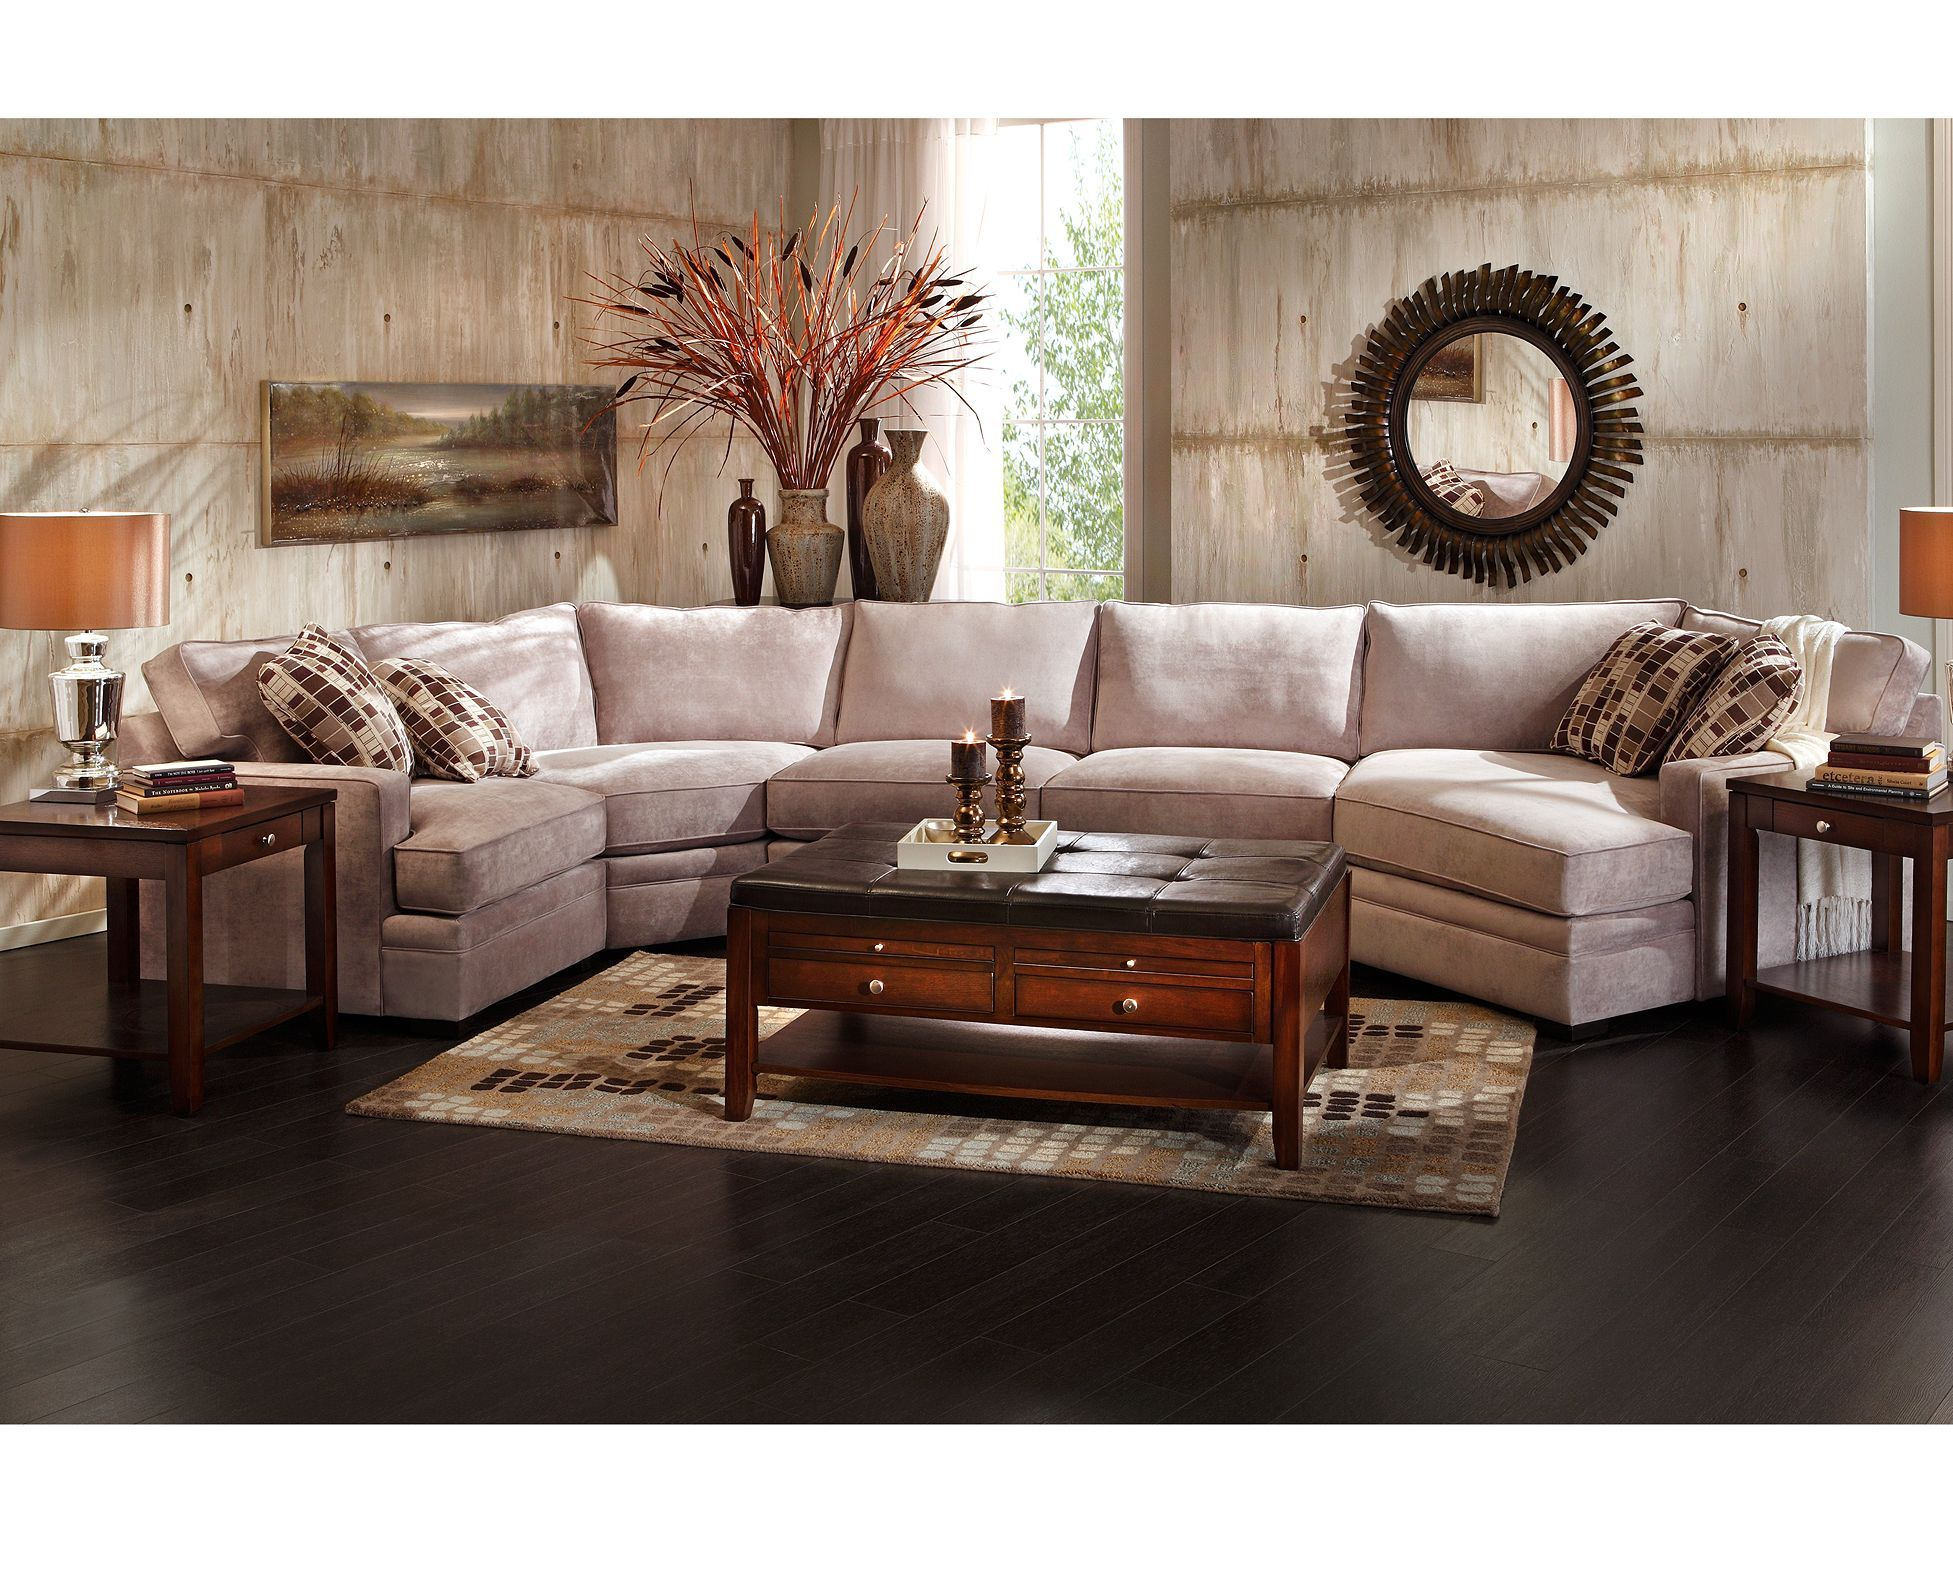 Glenwood 4 Pc. Sectional Sofa Mart 1 844 763 6278